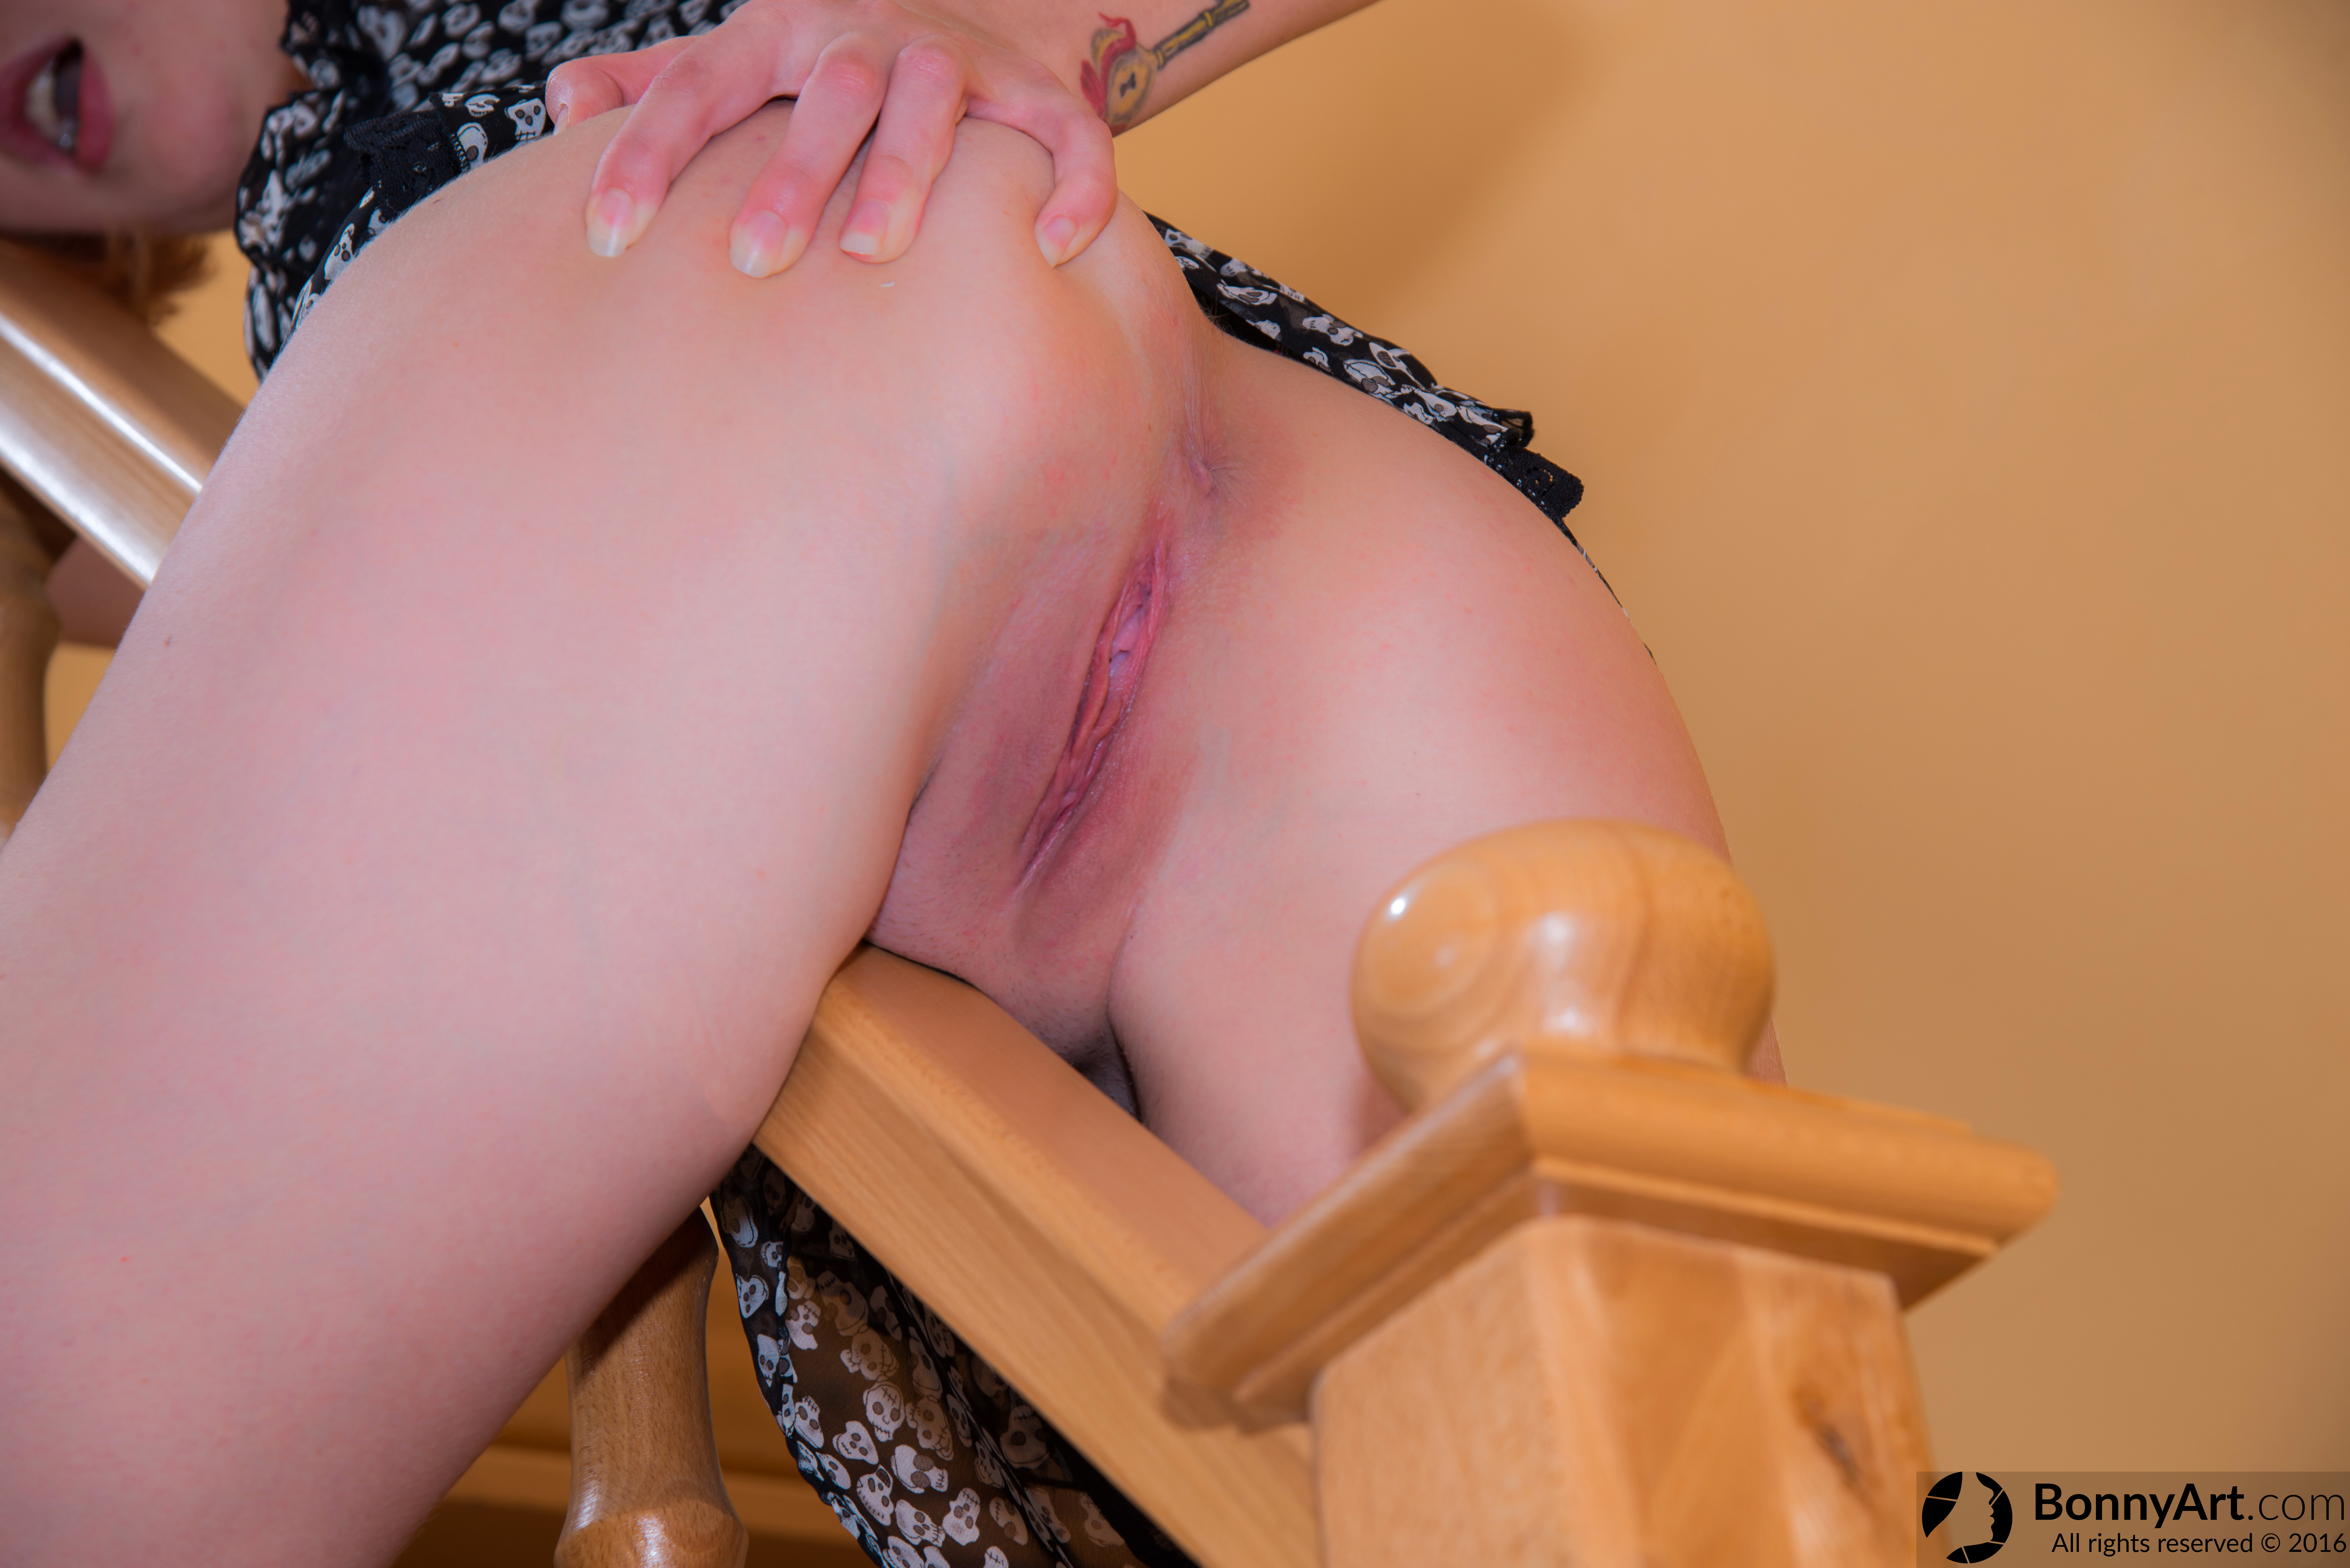 Moaning White Ass & Pussy Spreading on the Railing HD